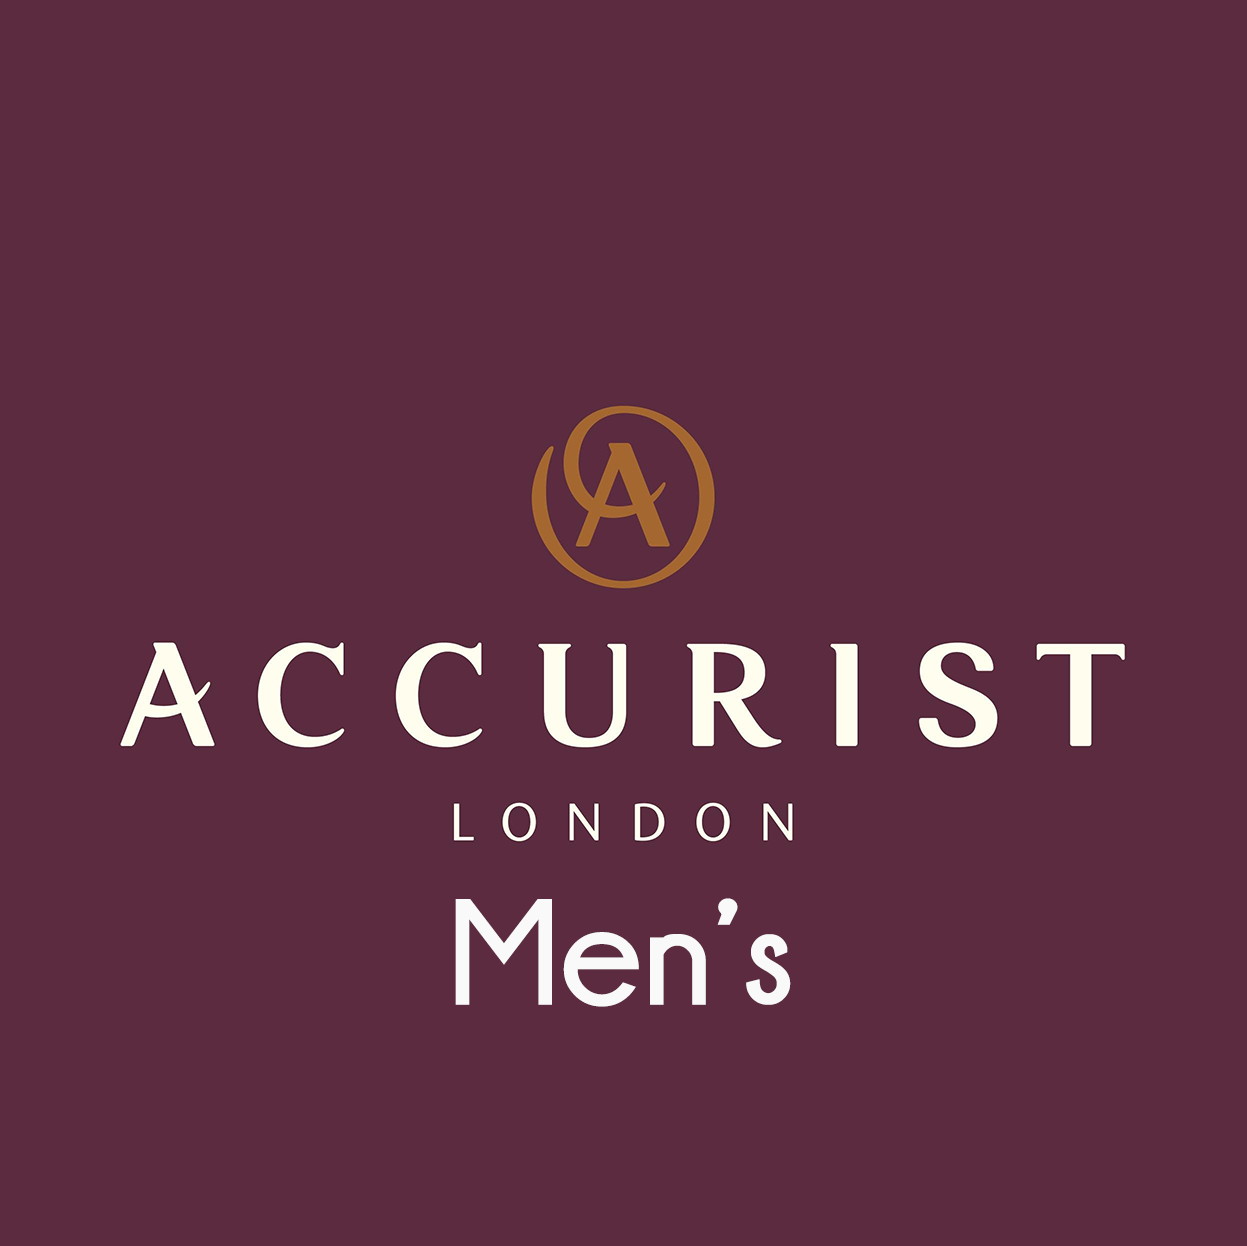 Men's Accurist Watches